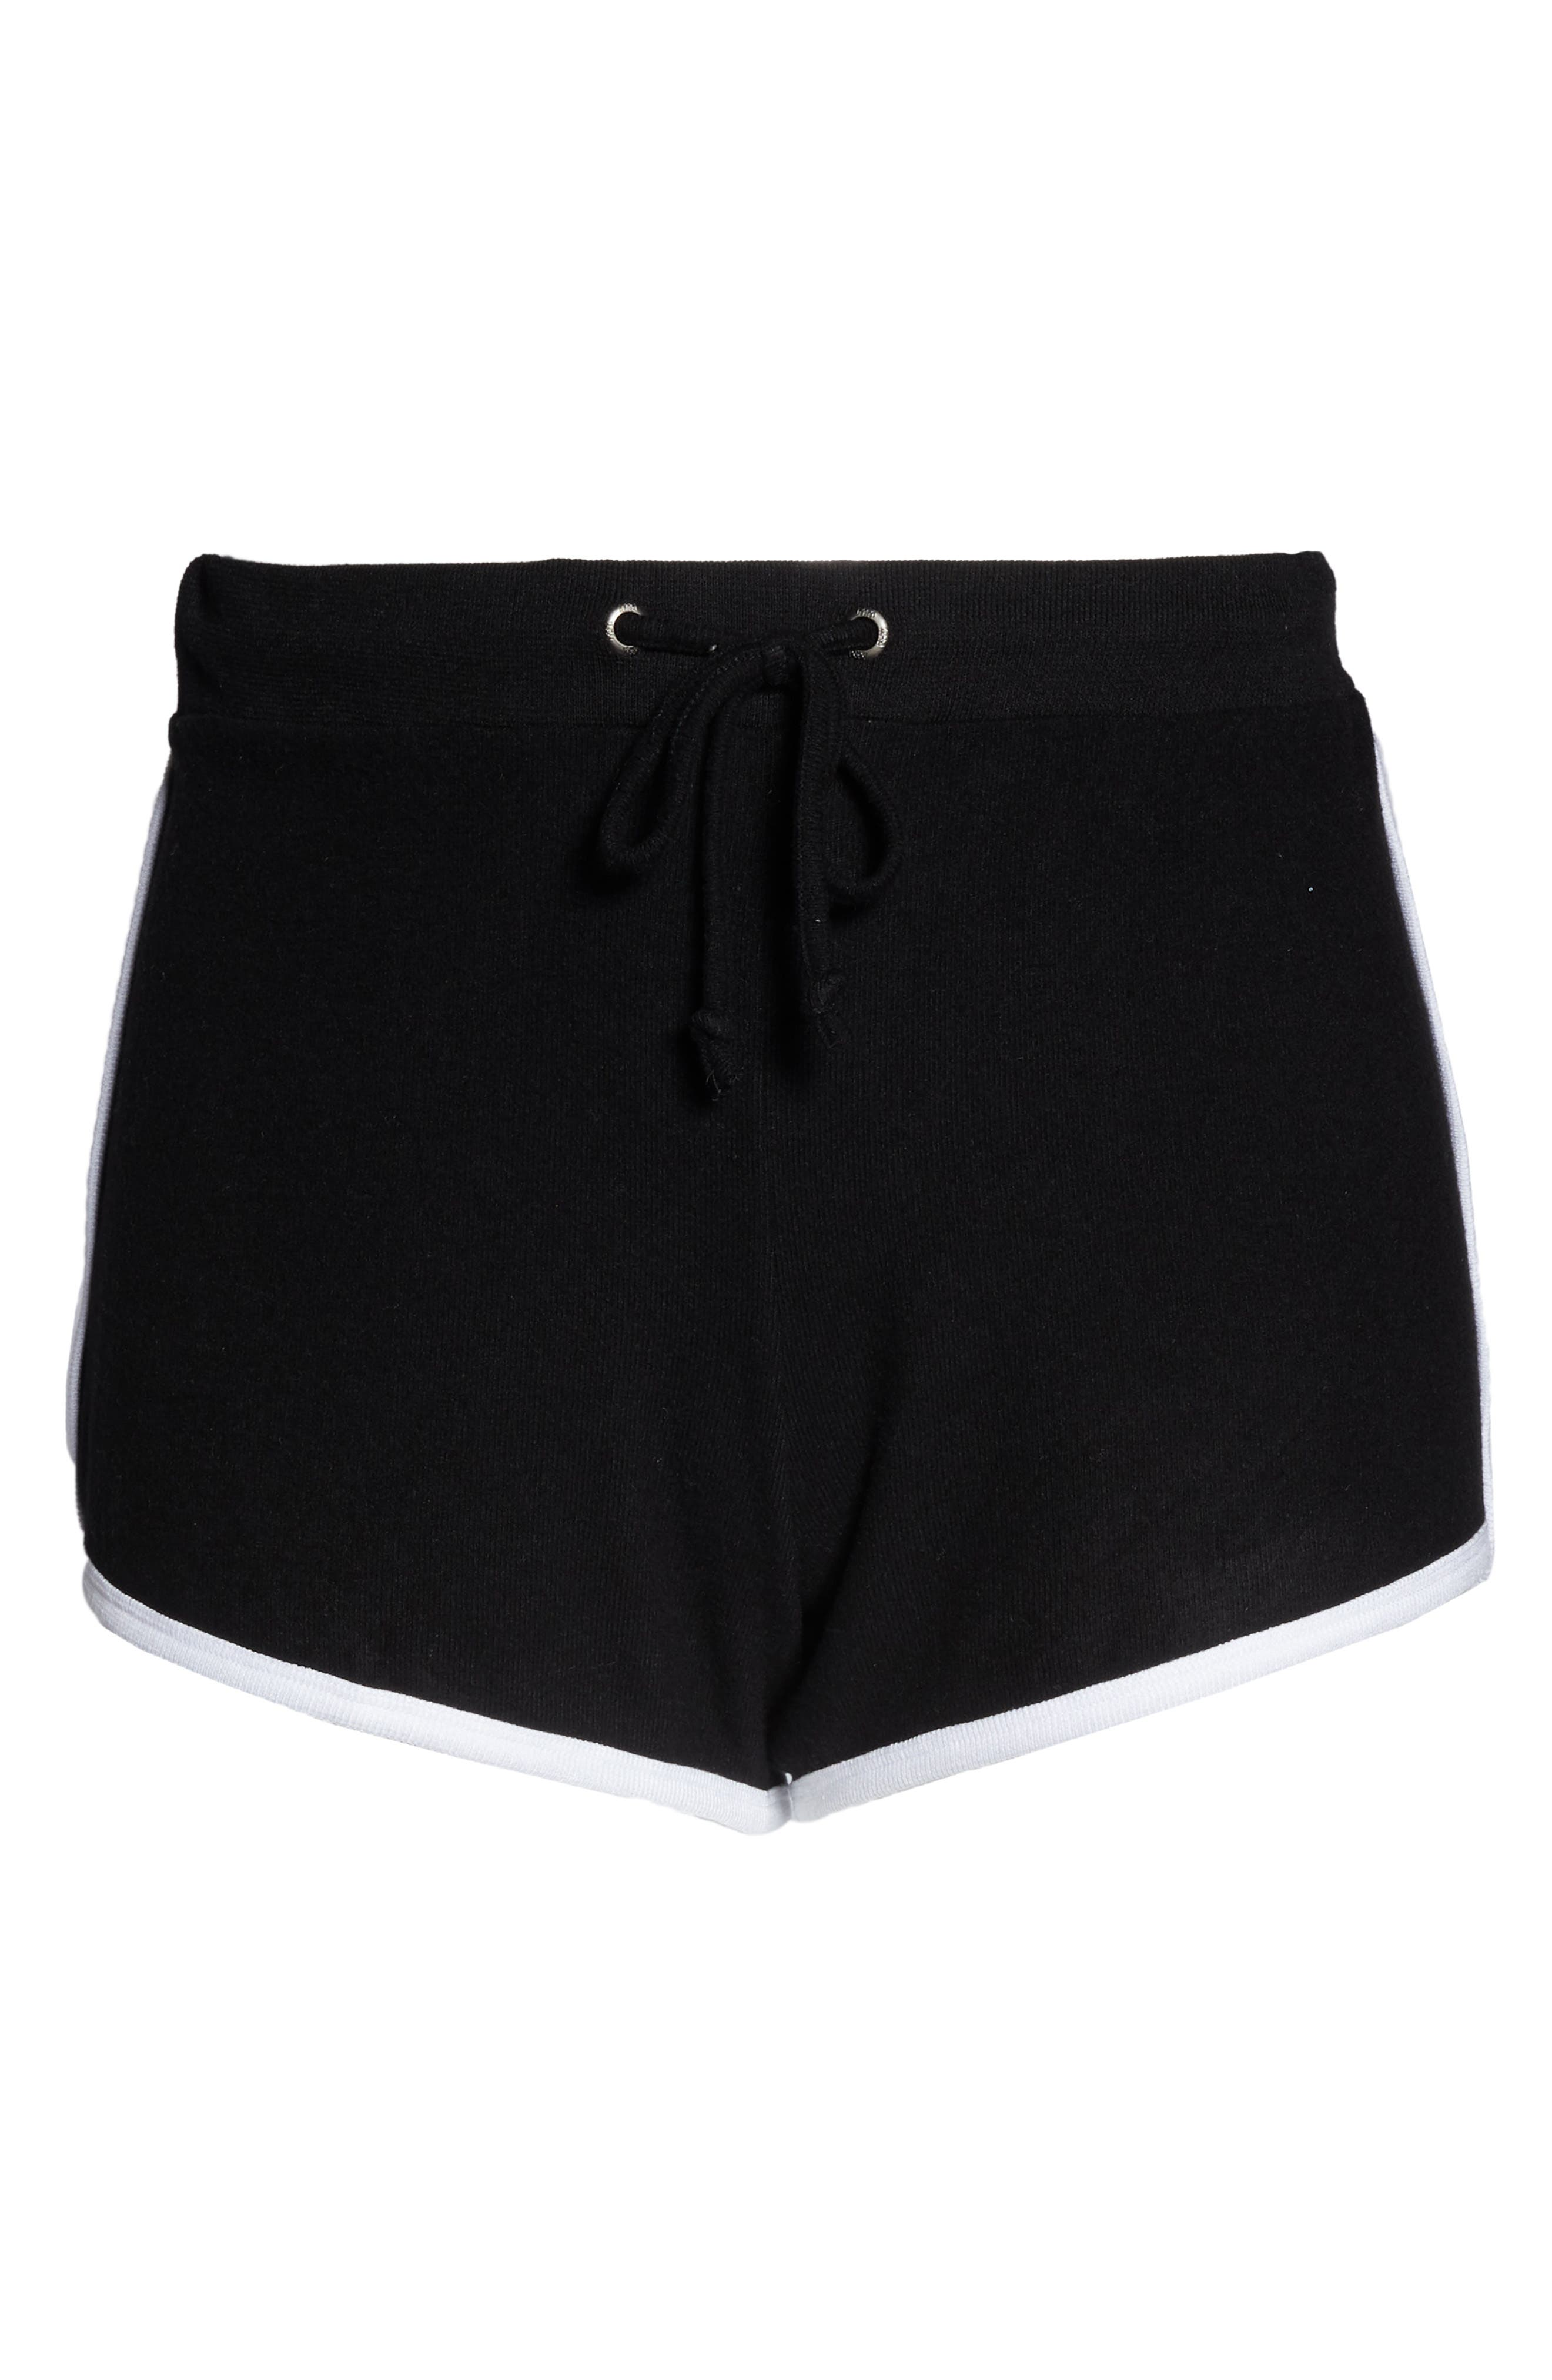 Too Cool Shorts,                             Alternate thumbnail 13, color,                             001